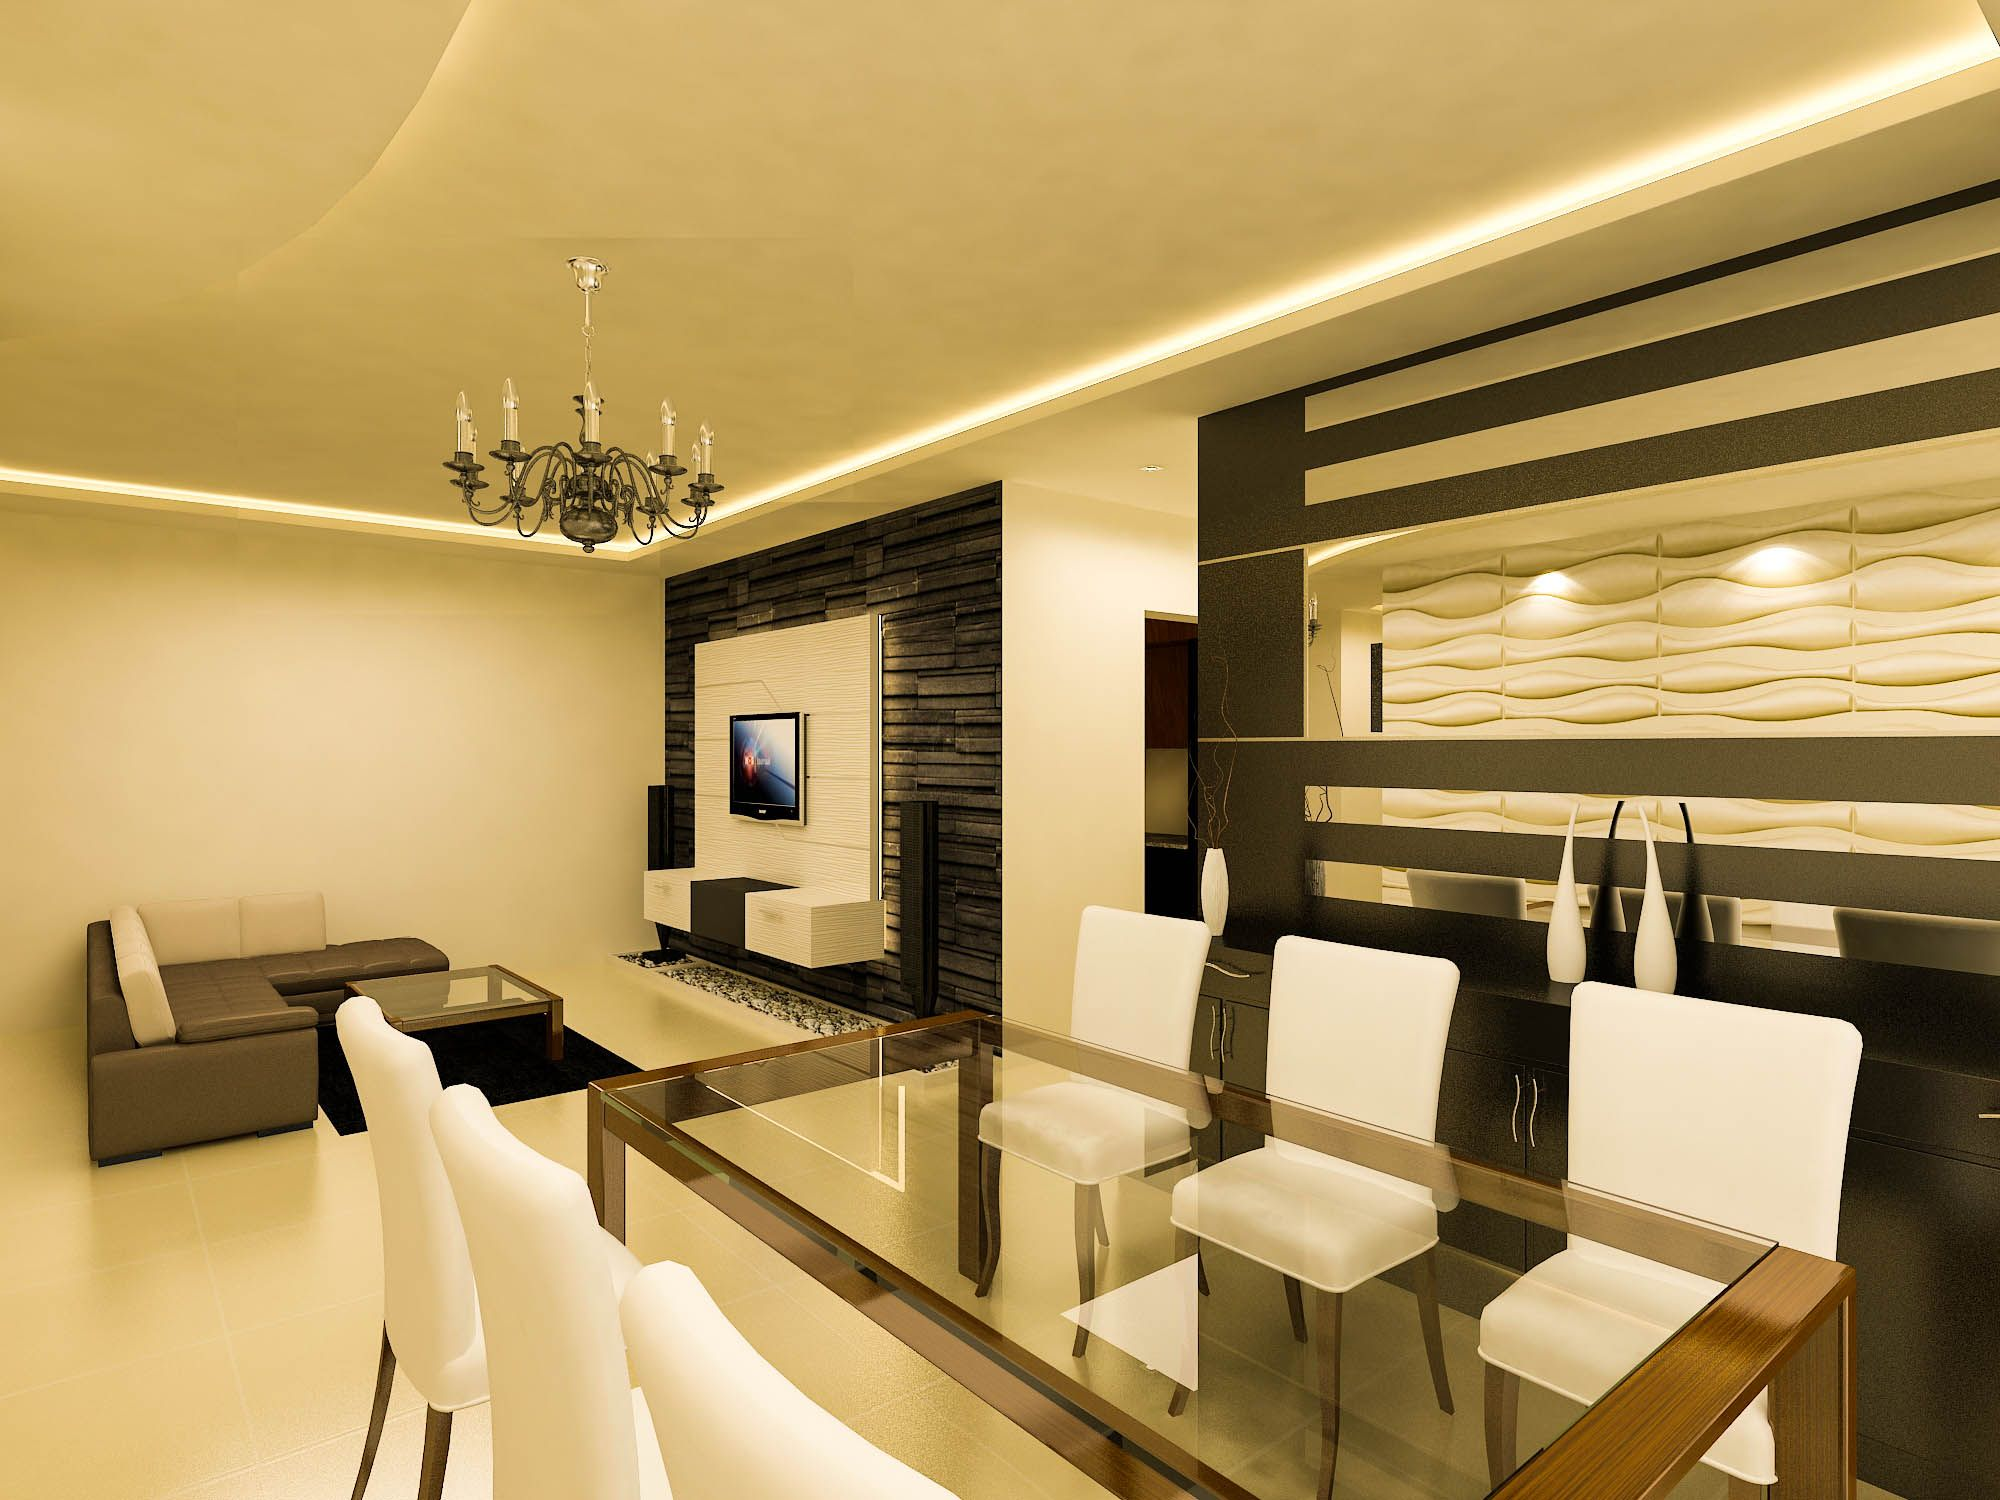 Living Room Designs For Apartments Inspiration A Living Room Design For The Sobha Classic Apartment In Bangalore Decorating Design